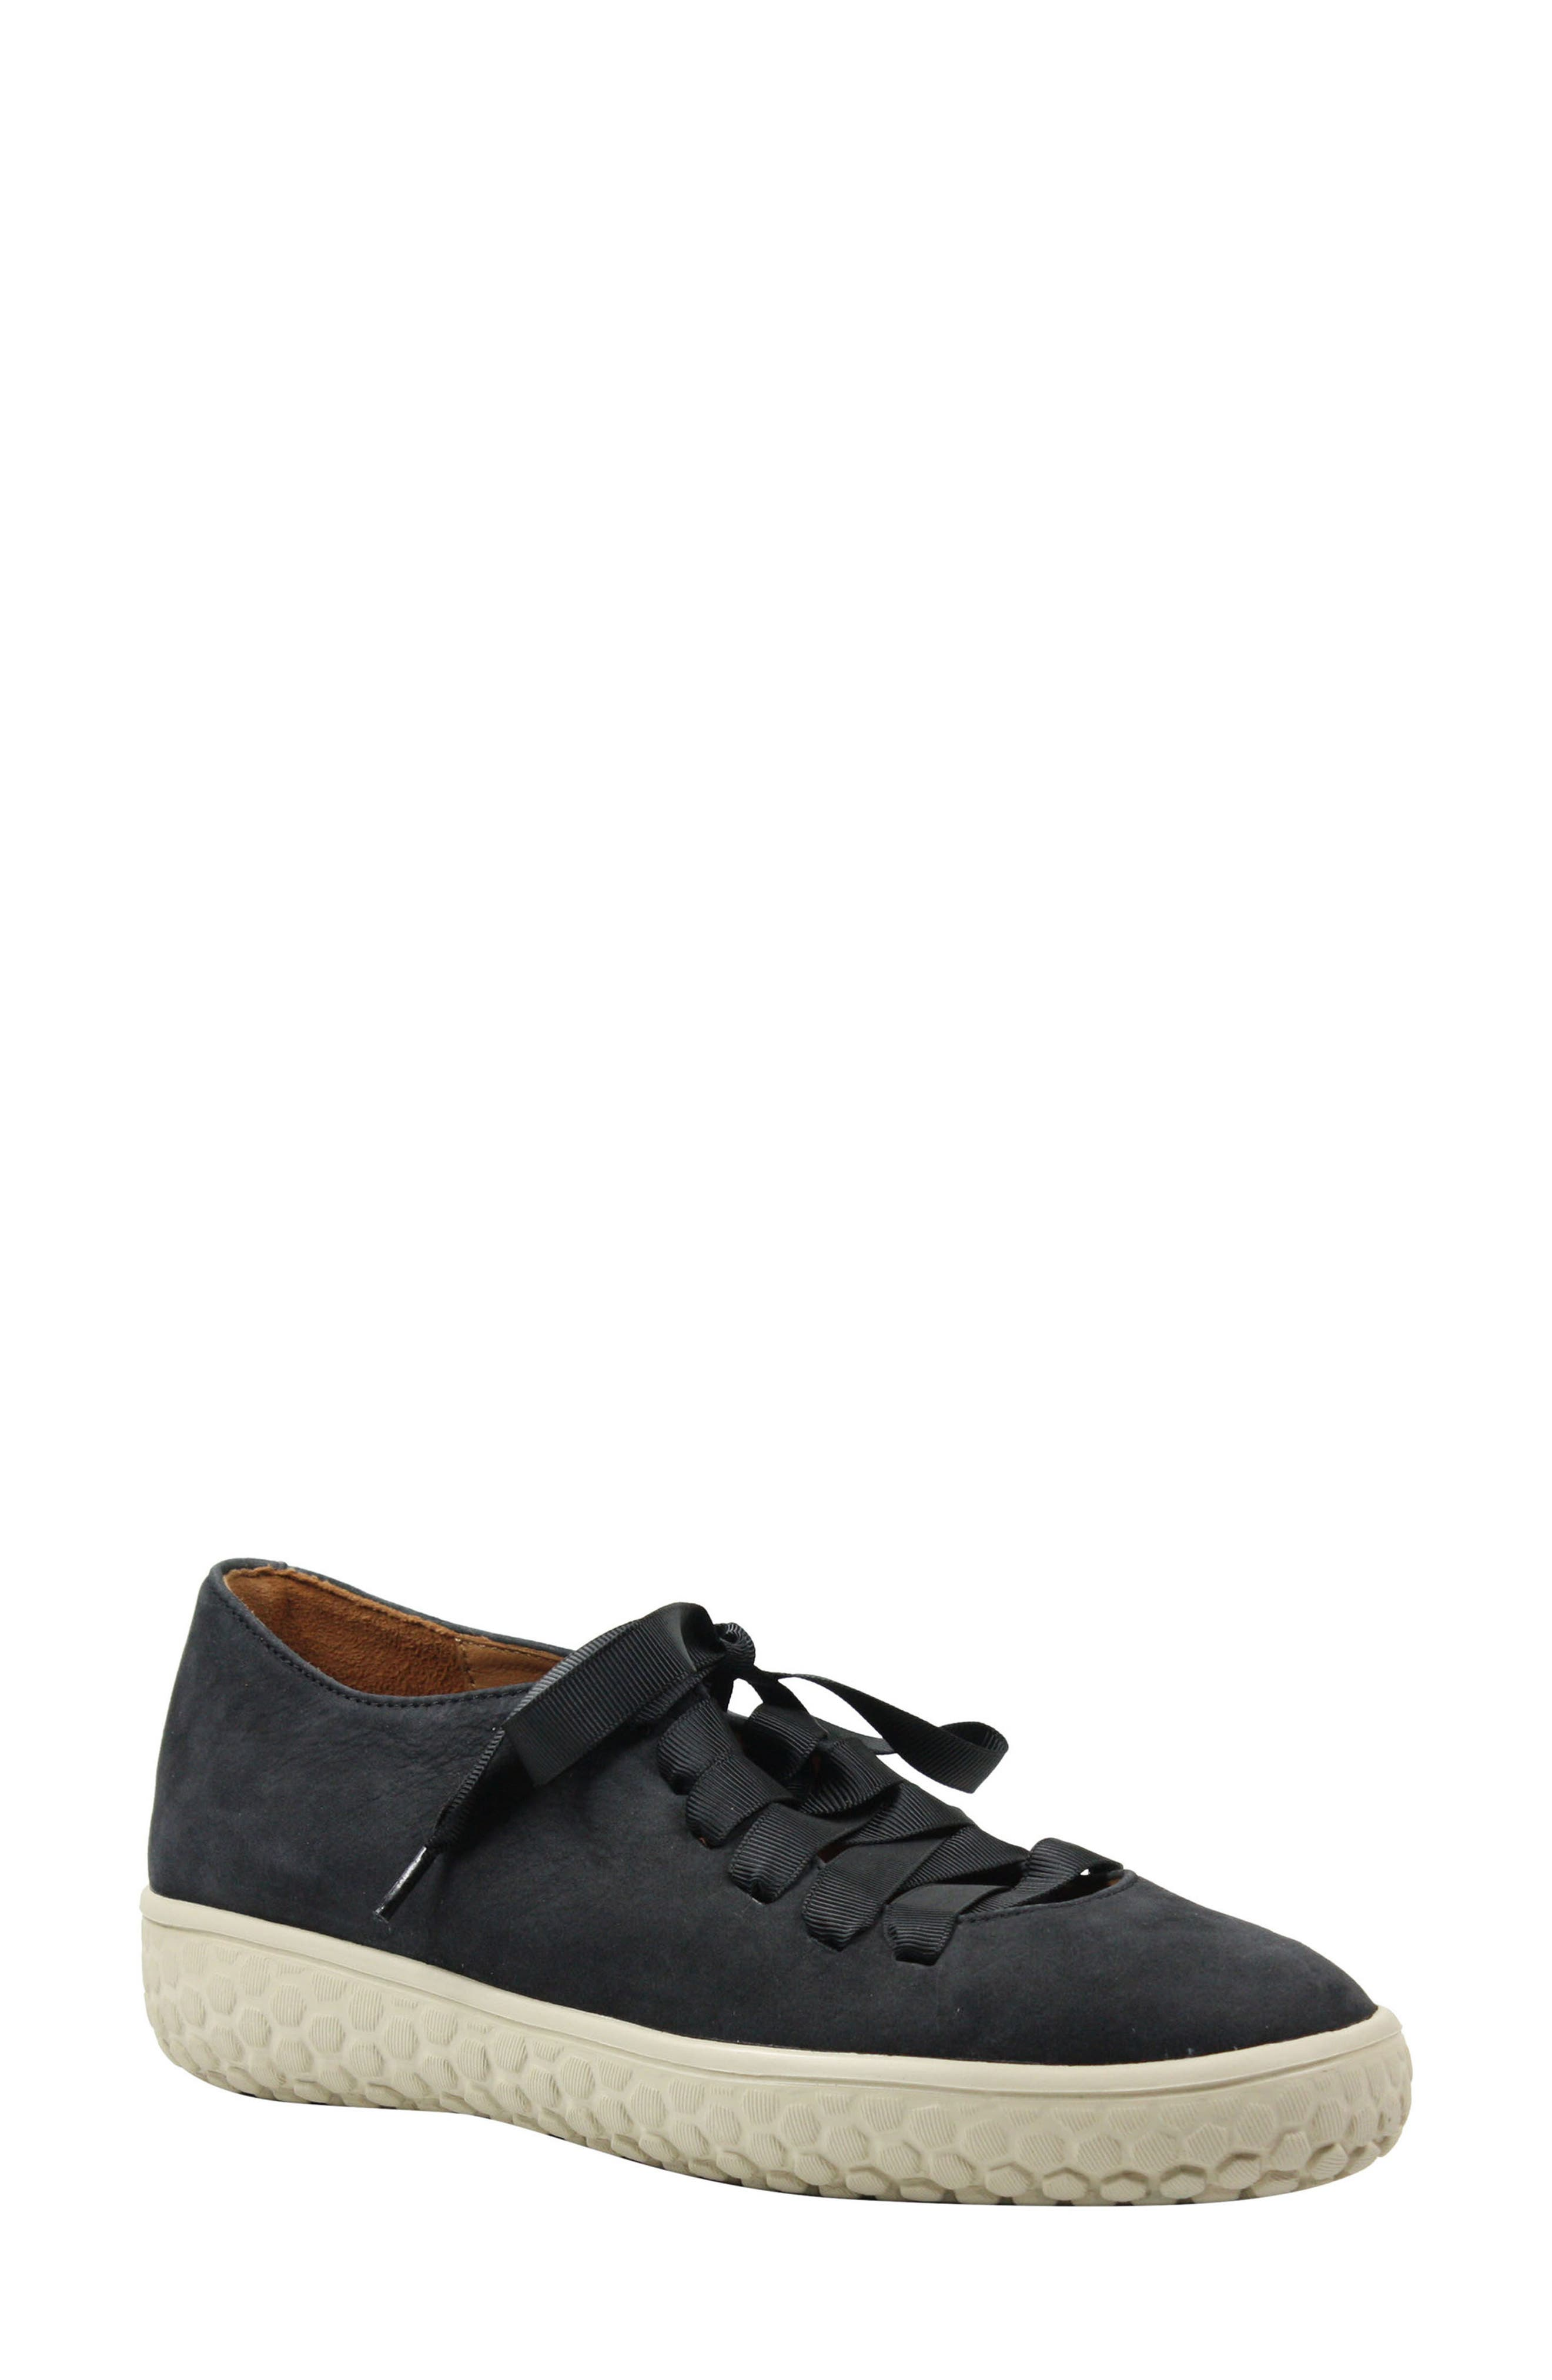 Zaheera Sneaker,                         Main,                         color, Black Nubuck Leather